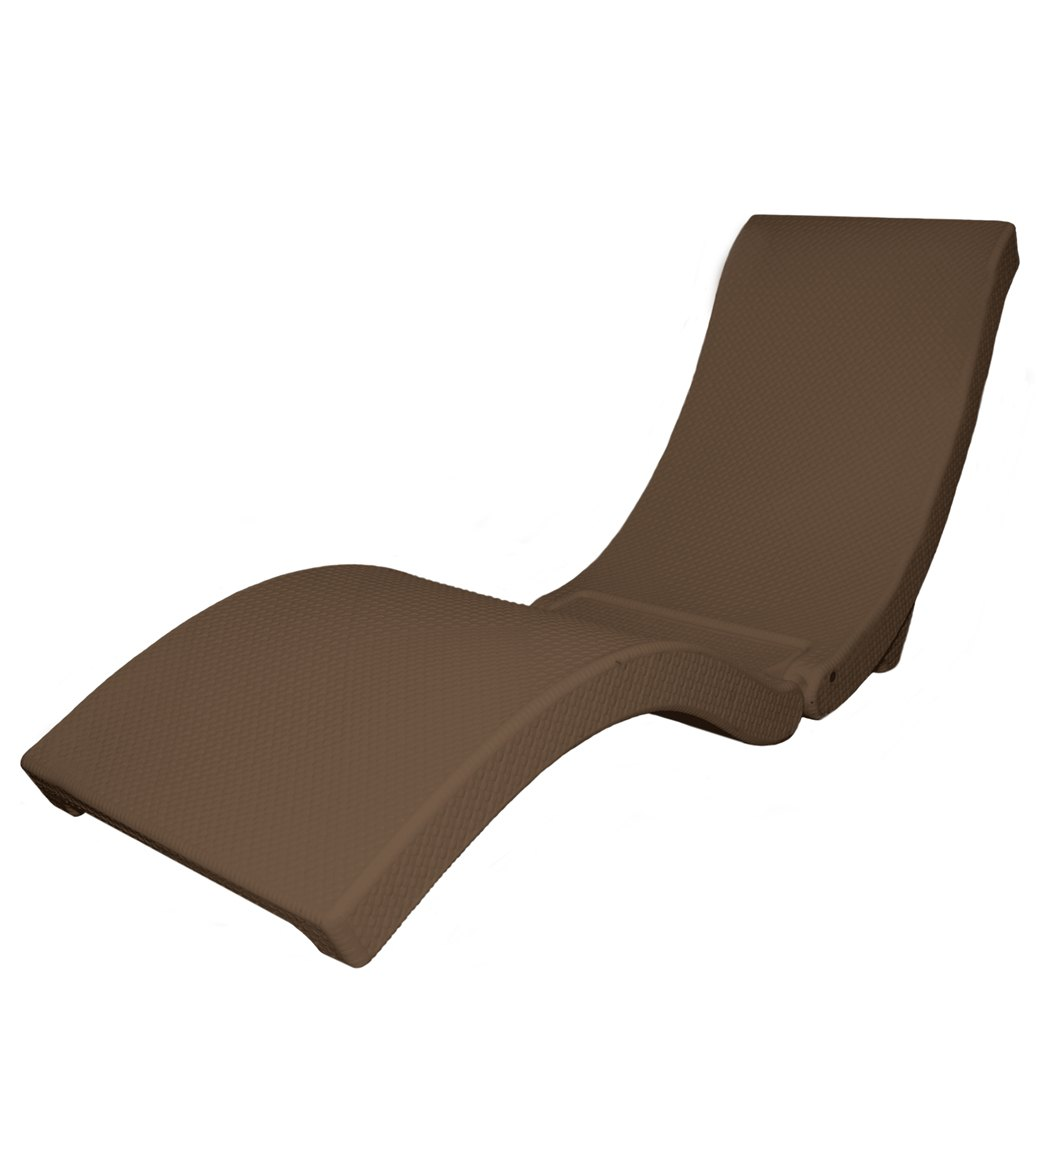 Swimways Terra Sol Sonoma Chaise Floating Lounger At